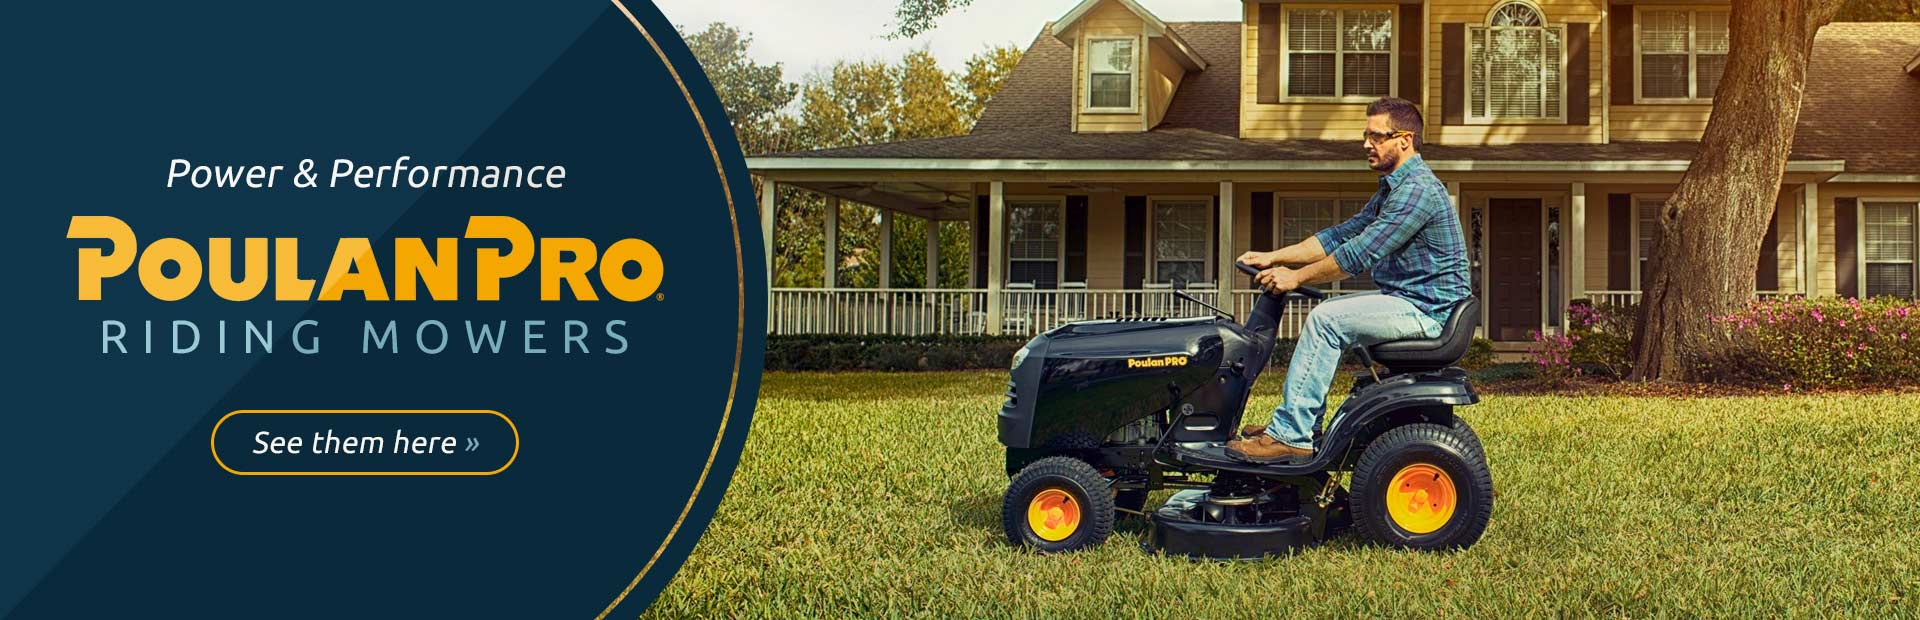 Poulan Pro Riding Mowers: Click here to view the models.